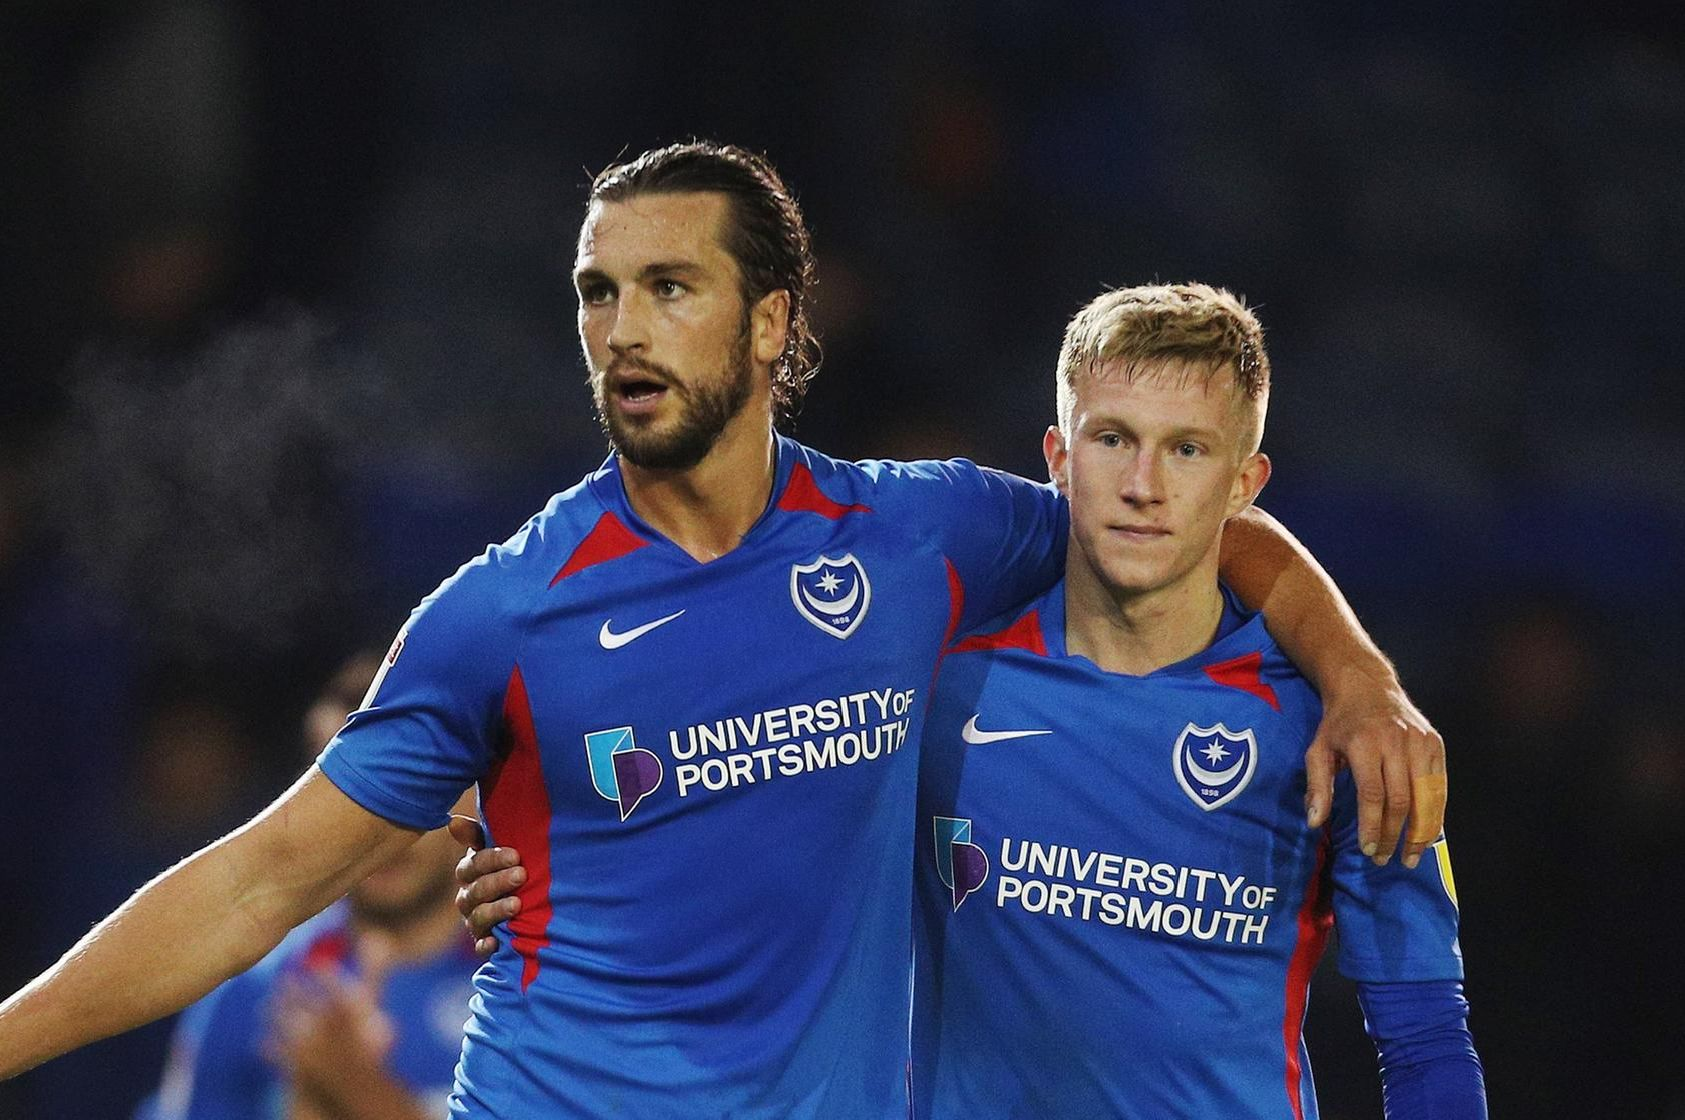 League one - Portsmouth vs Lincoln City - 22/10/19'Portsmouth's Christian Burgess  and Portsmouth's Ross McCrorie